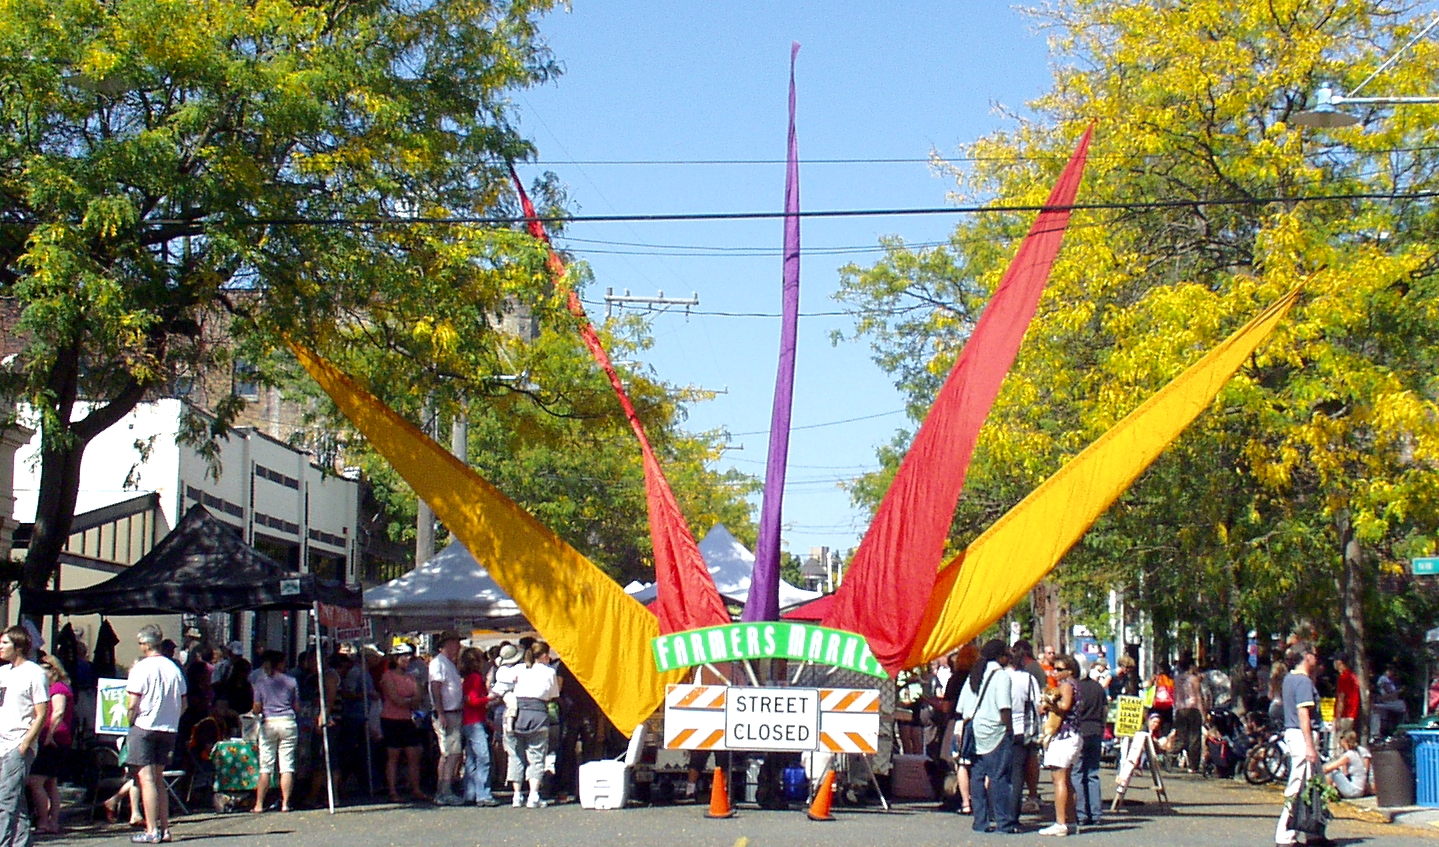 A look of fall fills the air at Ballard Farmers Market. Photo copyright 2009 by Zachary D. Lyons.